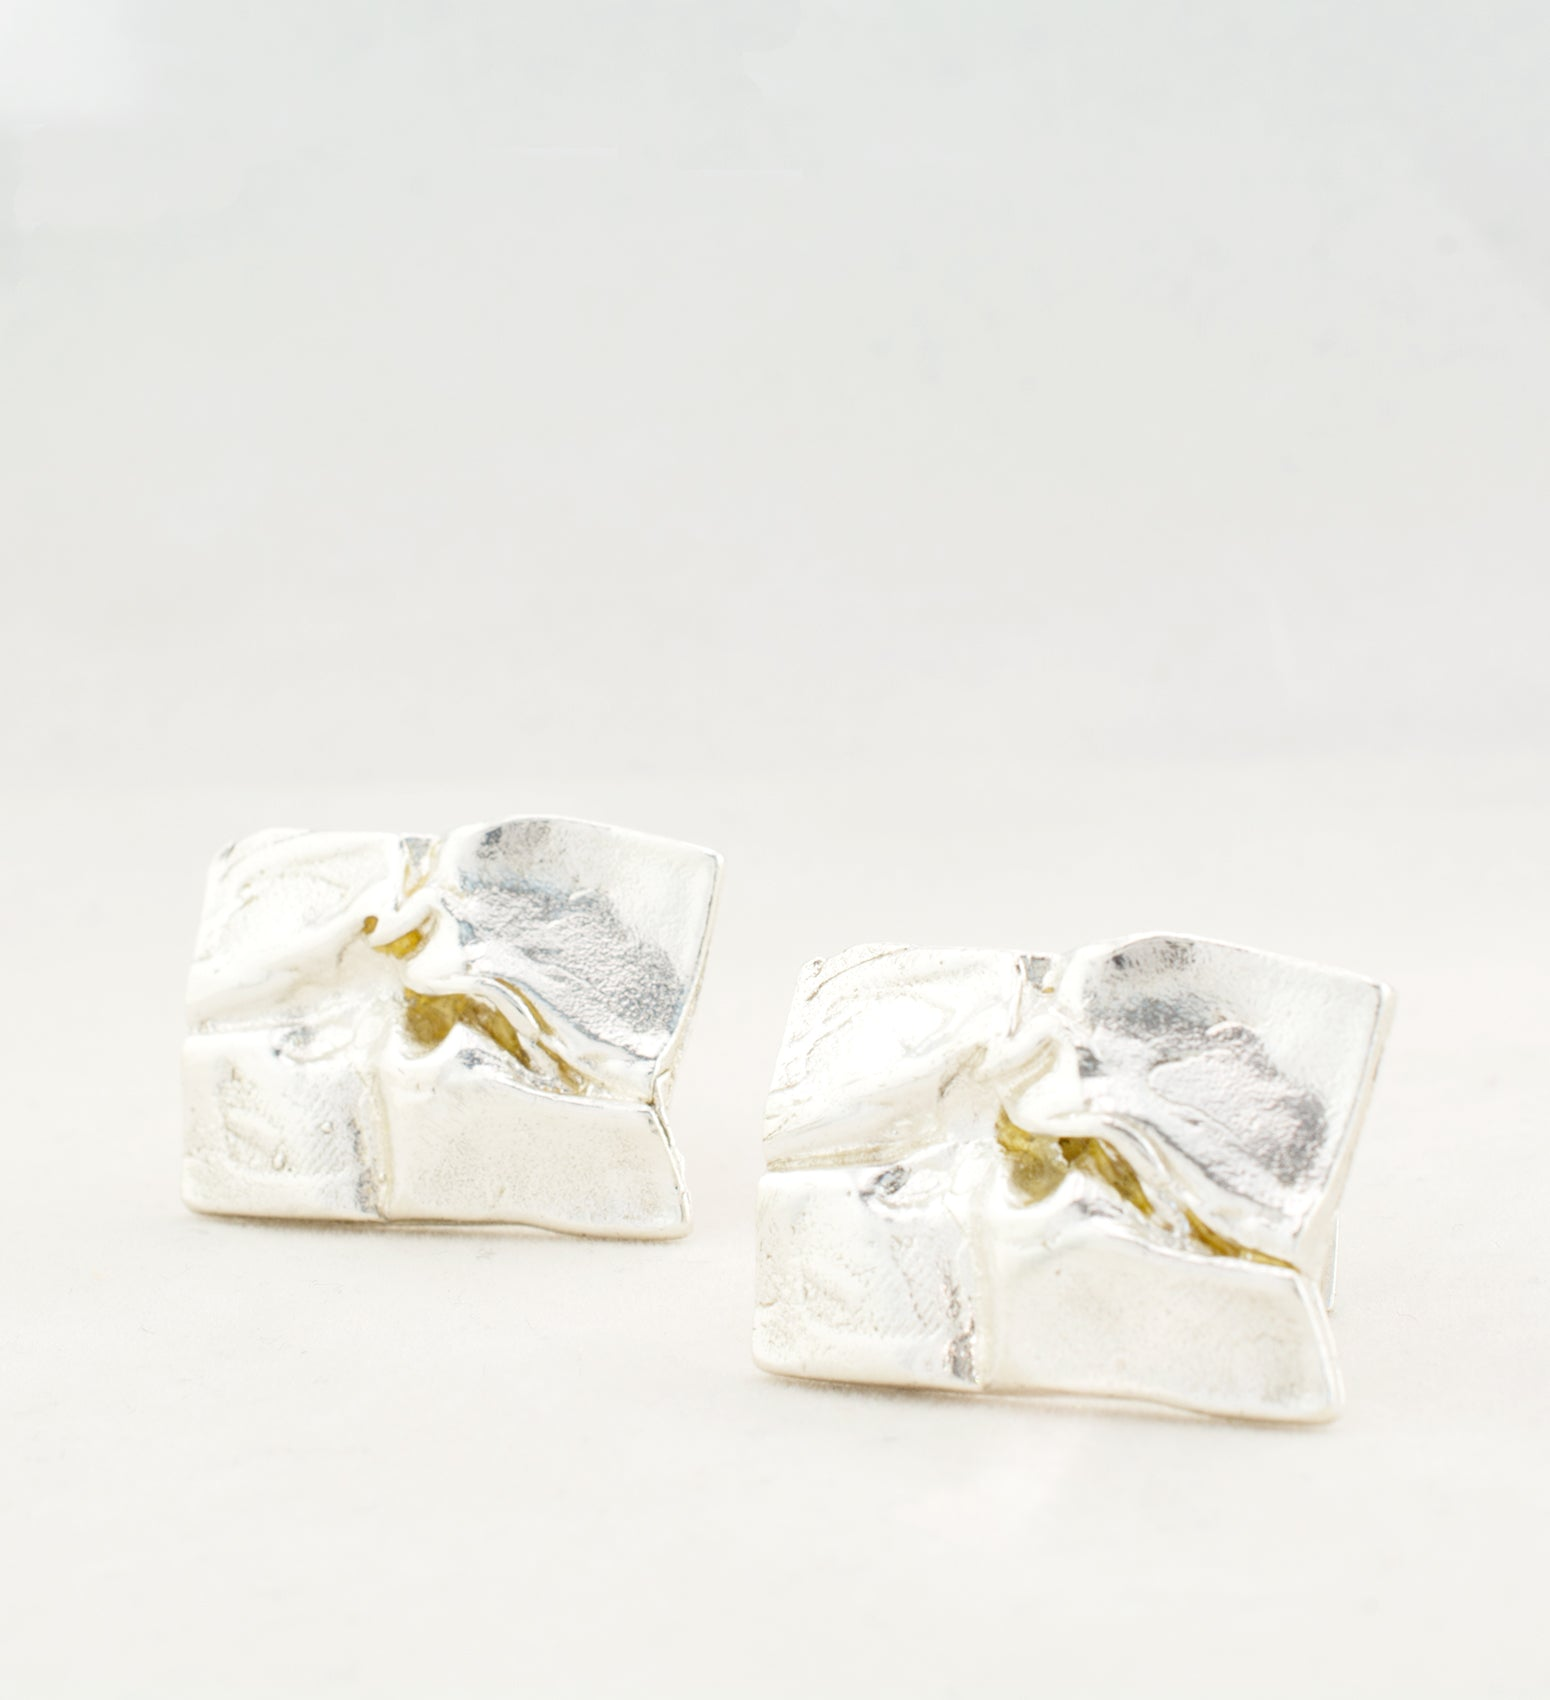 "1970s Sterling Silver ""Andomeda"" Cufflinks by Björn Weckström For Lapponia - Sold - Hopea"